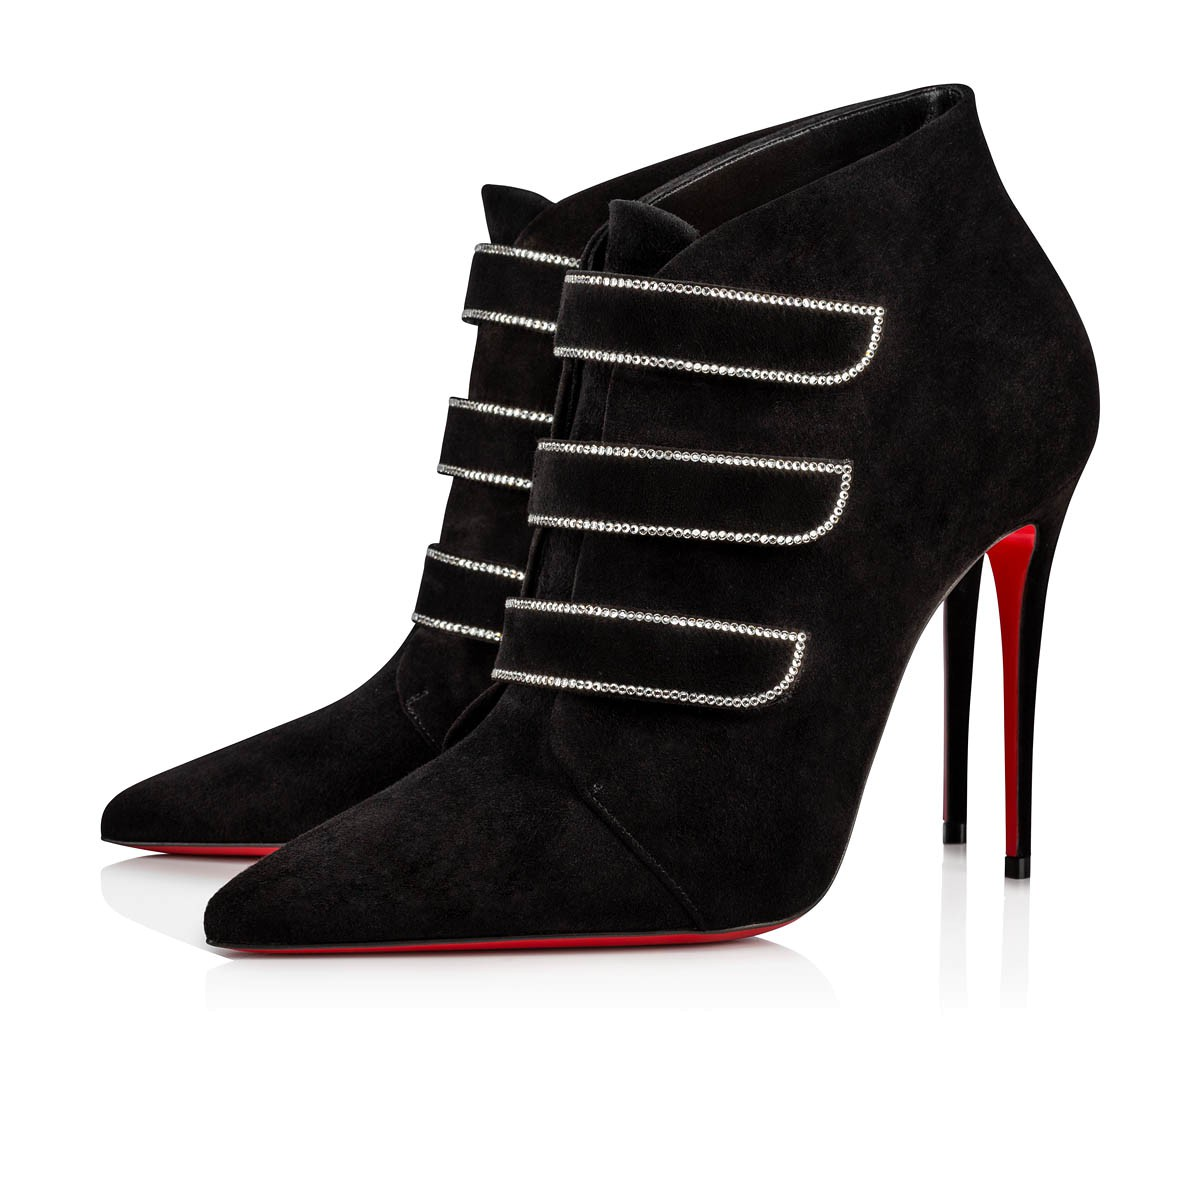 chaussures de sport 67990 aa823 TRINIBOOT STRASS 100 Black Veau Velours - Women Shoes - Christian Louboutin